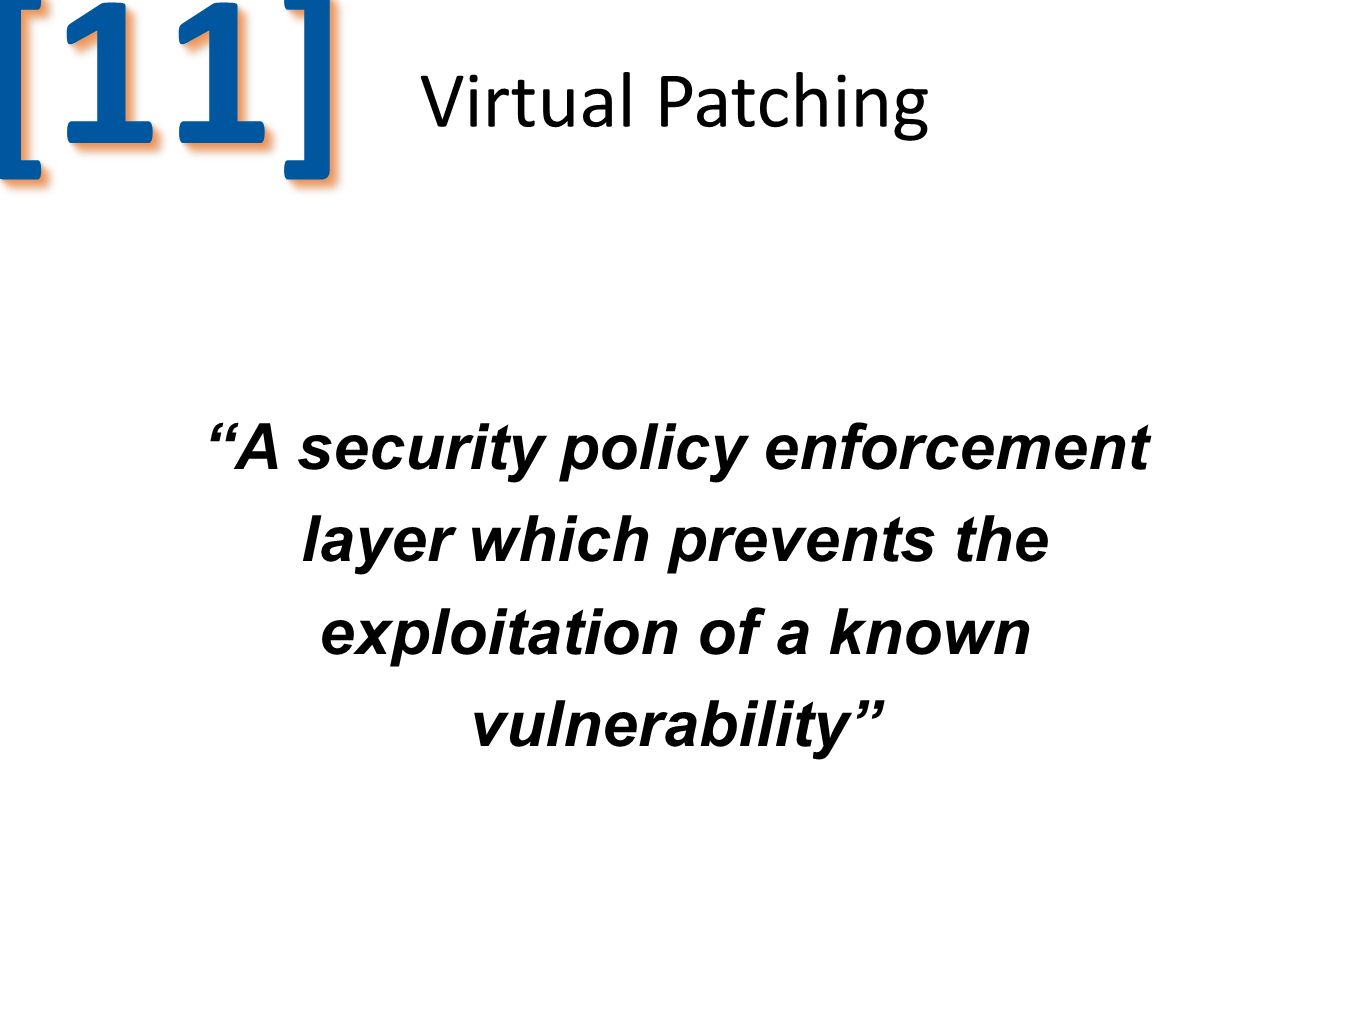 A security policy enforcement layer which prevents the exploitation of a known vulnerability [11][11] Virtual Patching